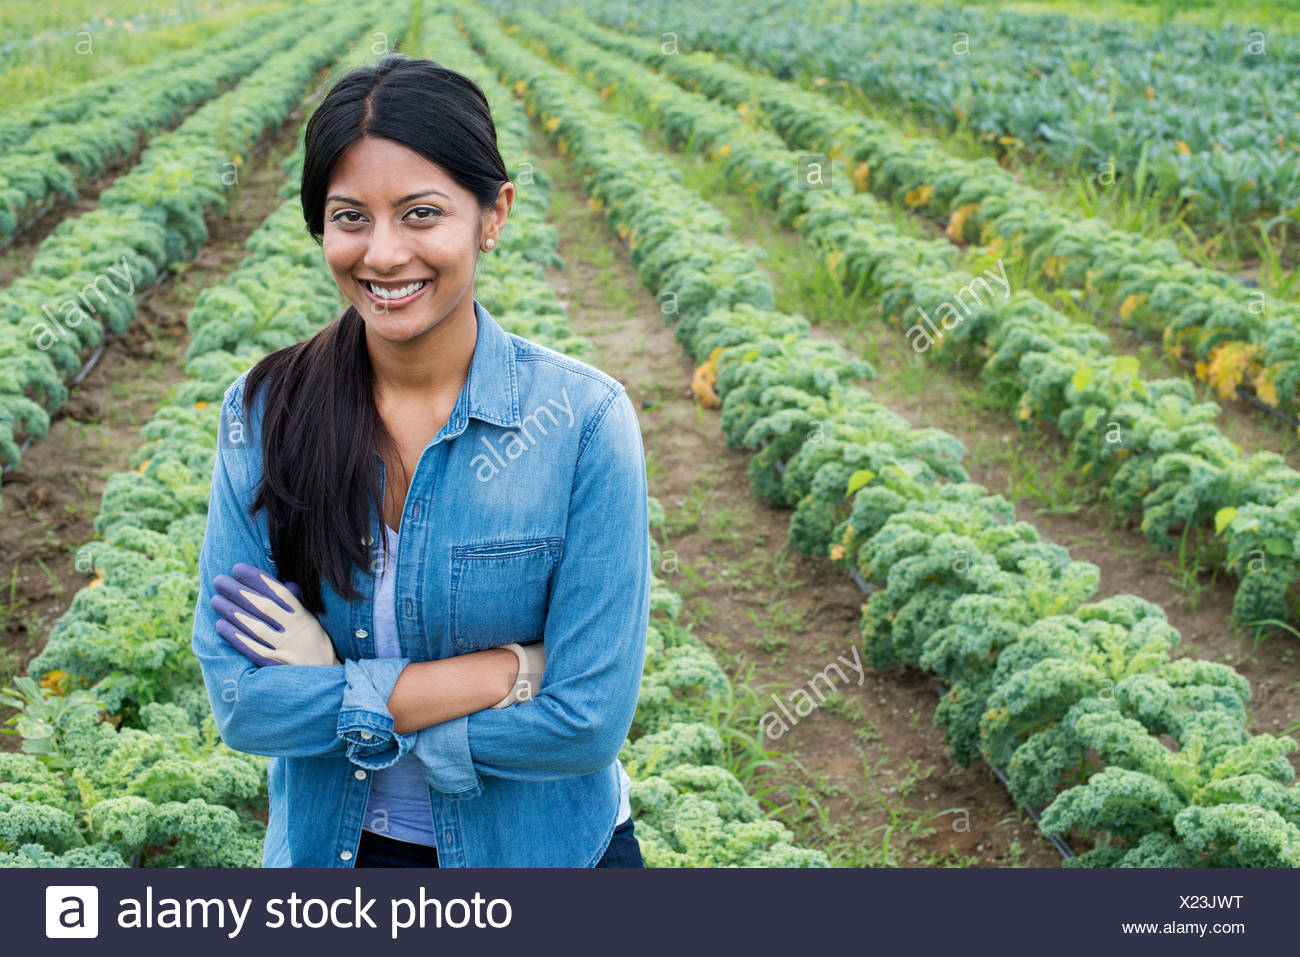 Rows of curly green vegetable plants growing on an organic farm.  A man inspecting the crop. - Stock Image